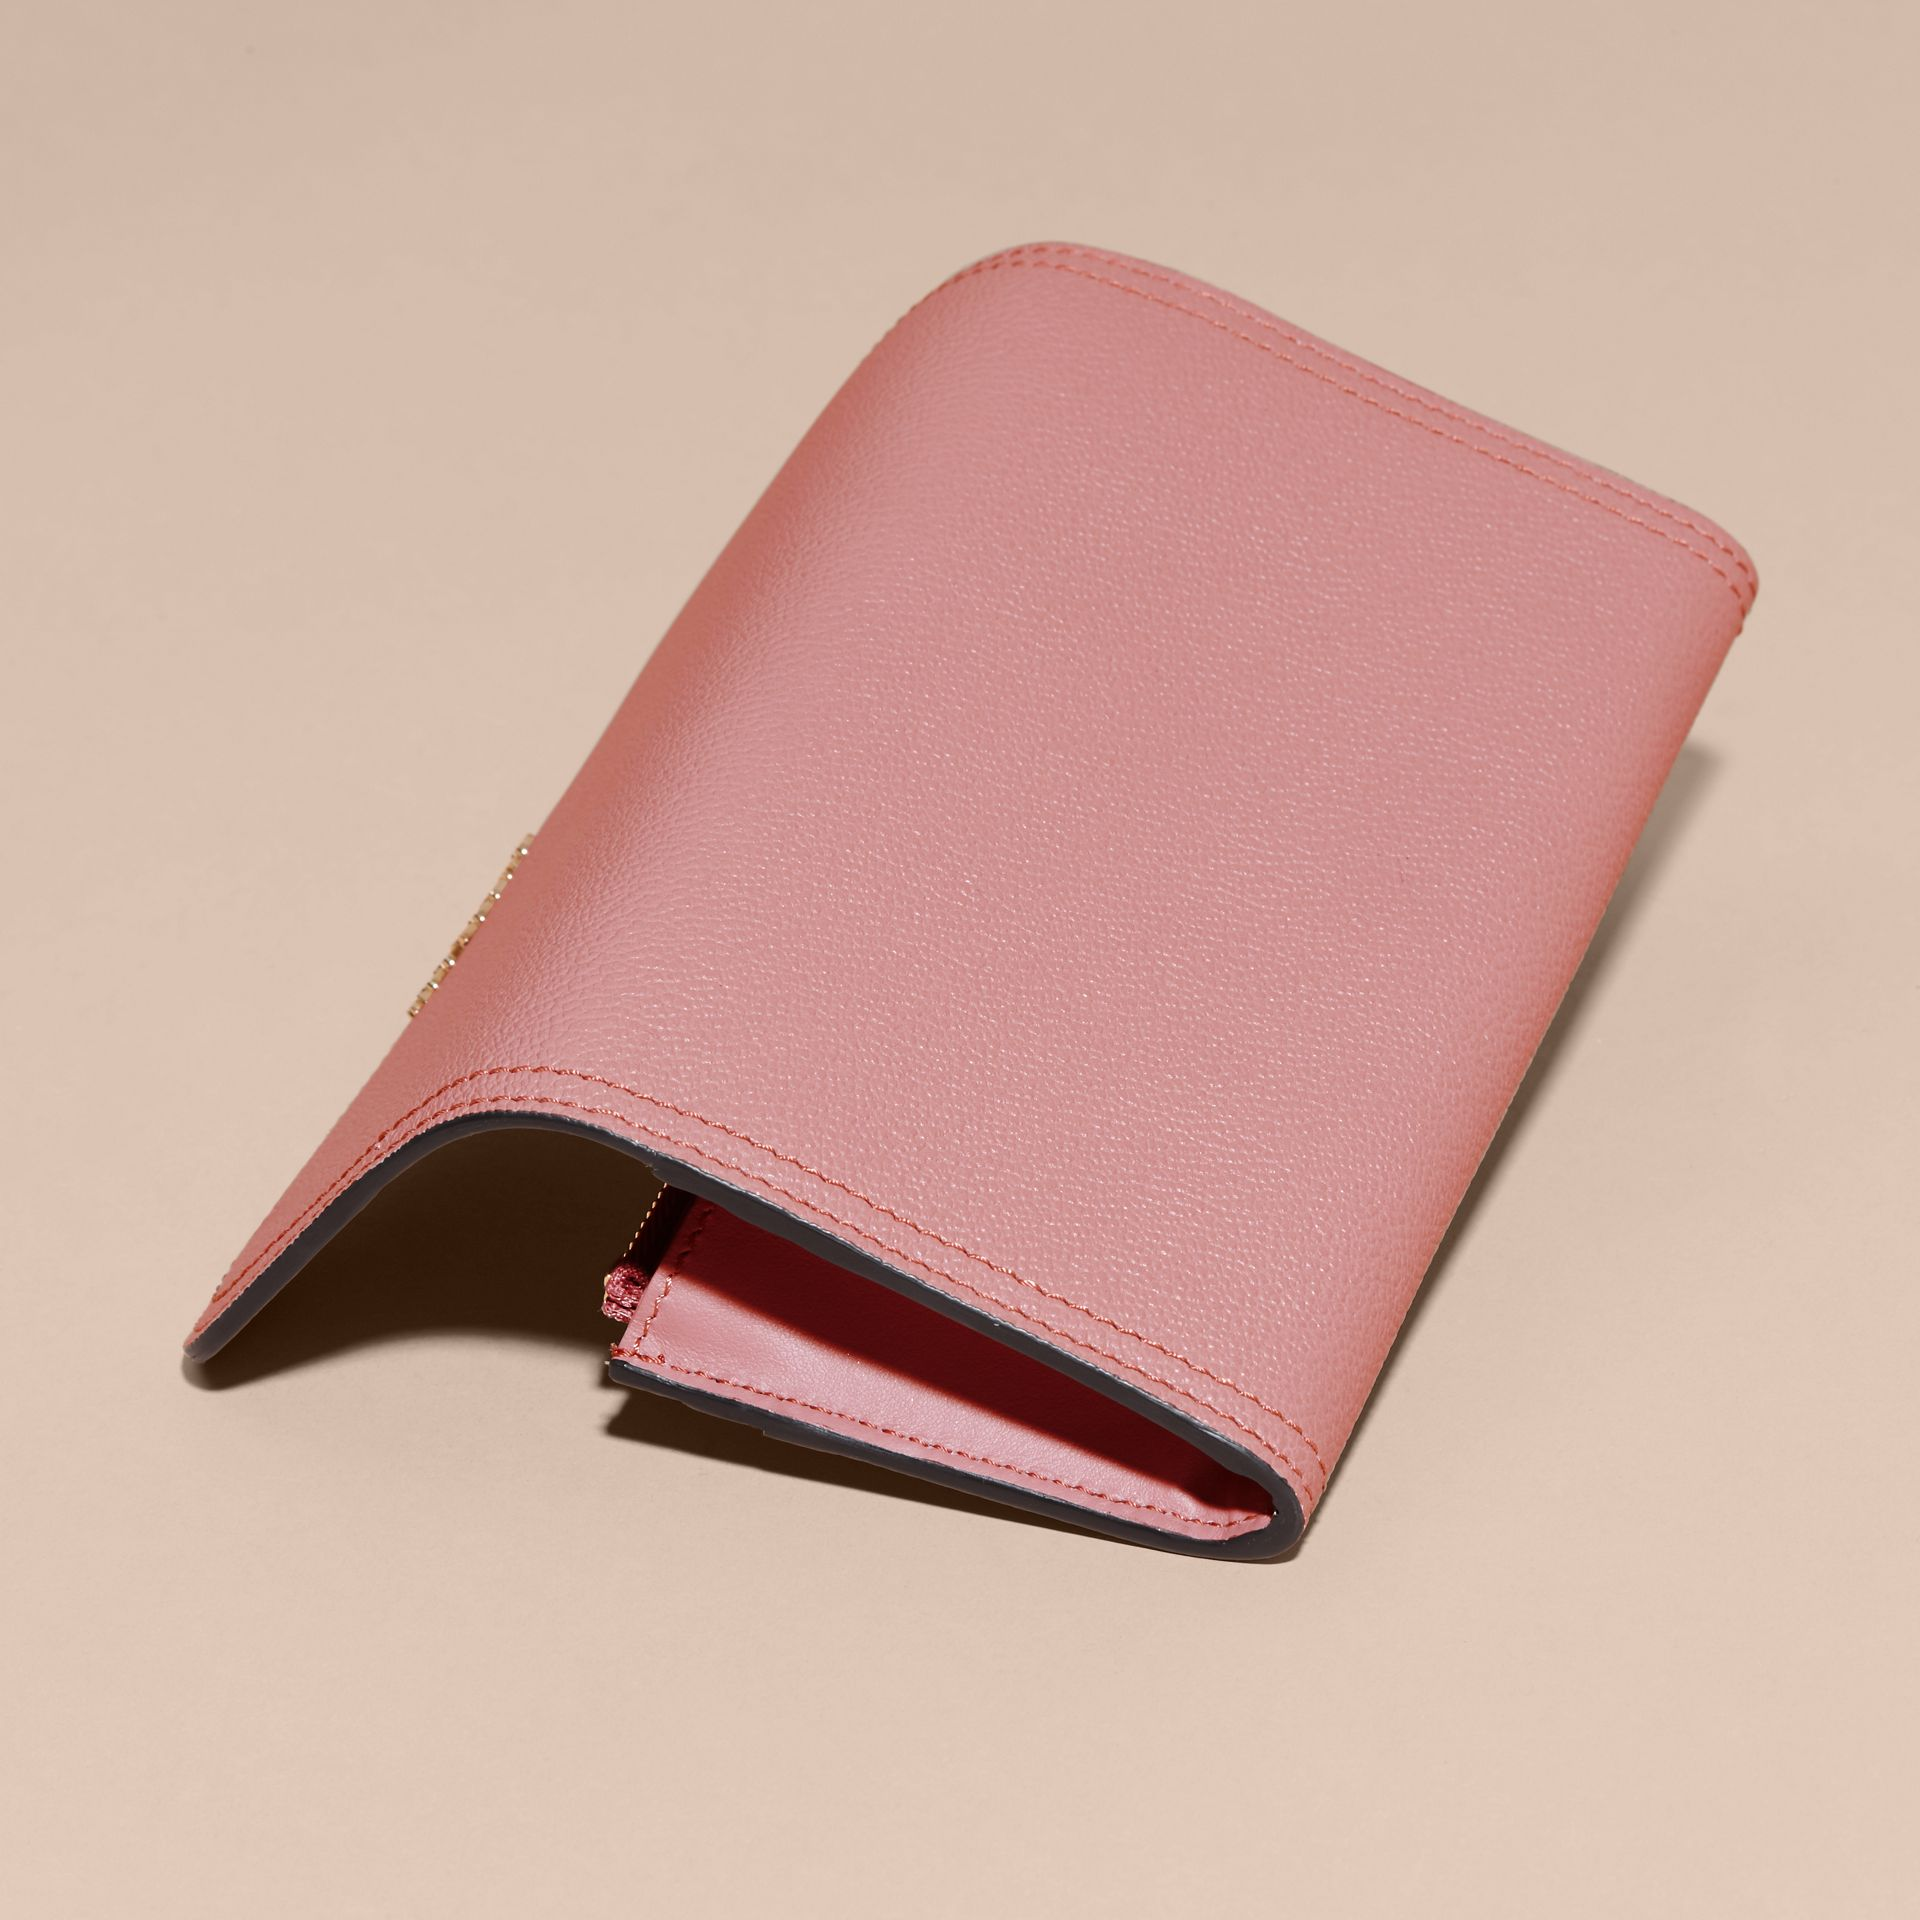 Grainy Leather Slim Continental Wallet in Dusty Pink - Women | Burberry - gallery image 5